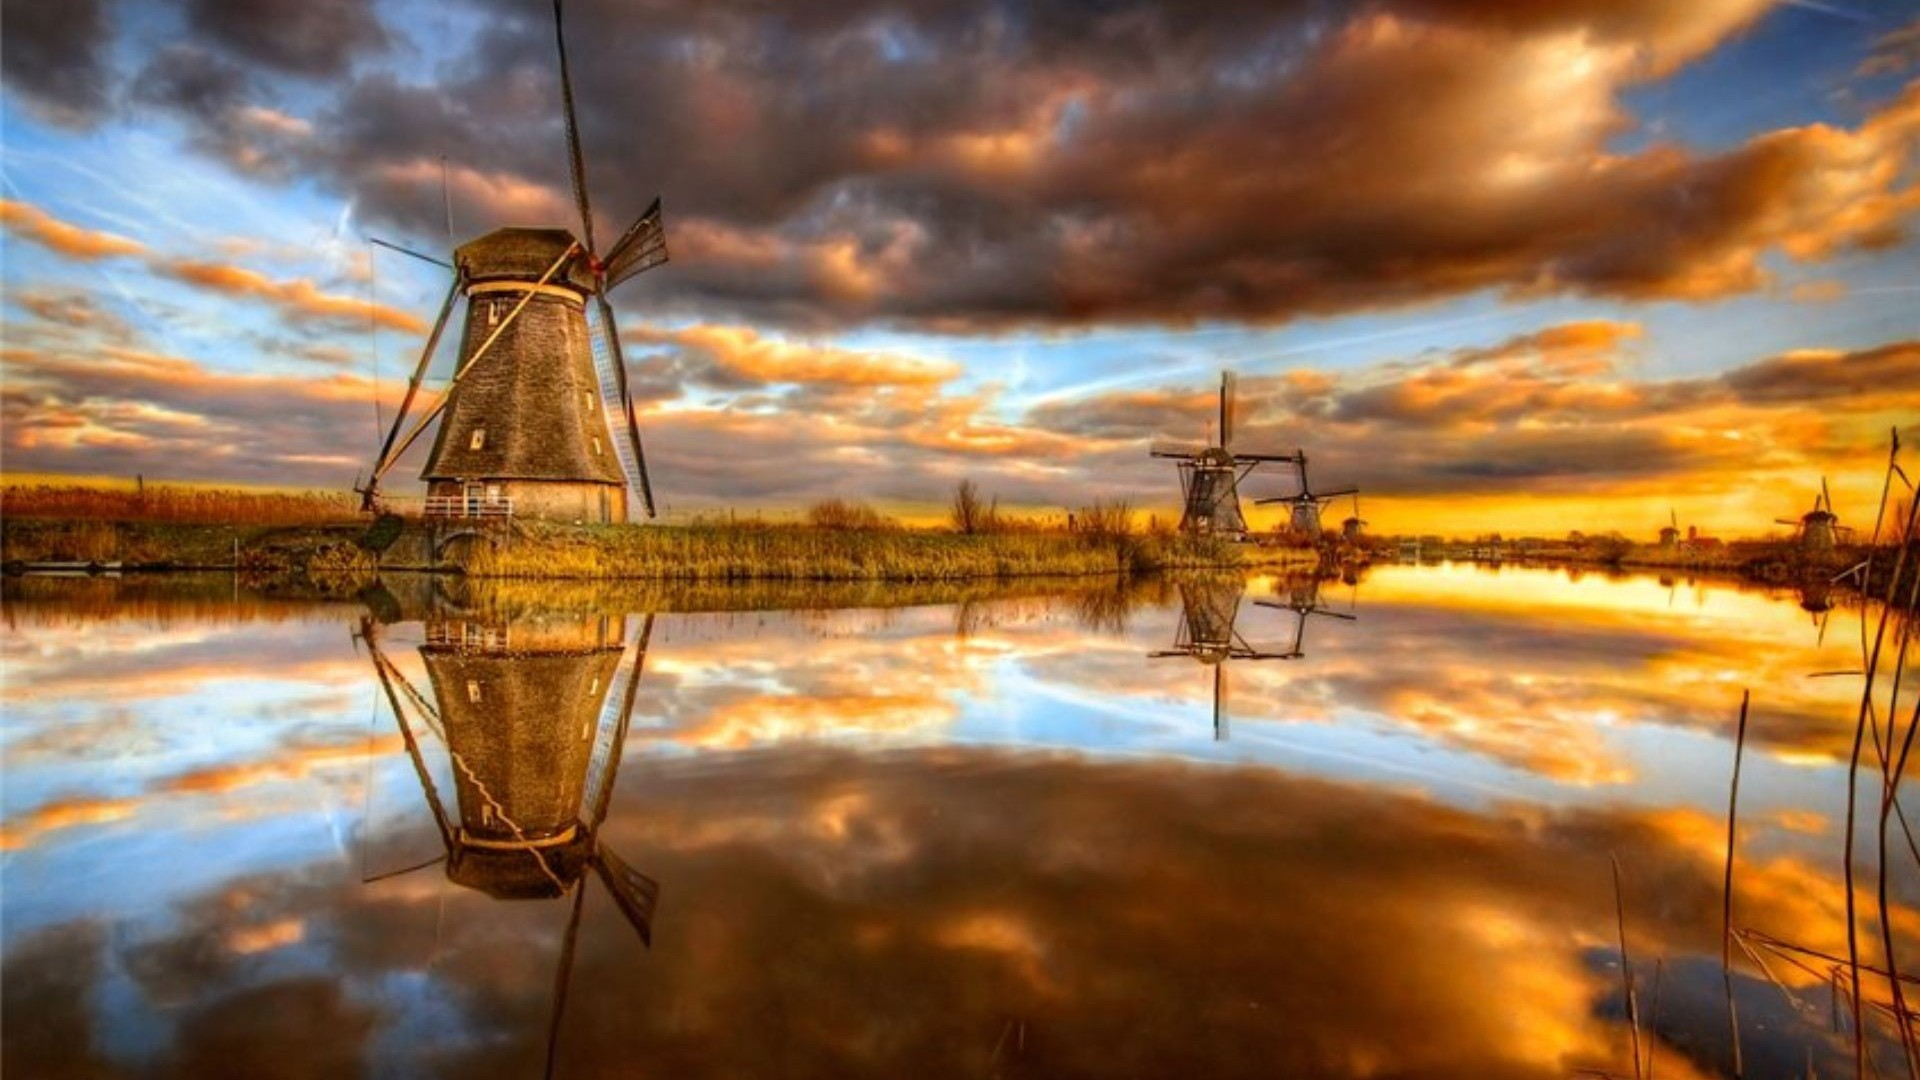 Netherlands Wallpapers | Best Wallpapers